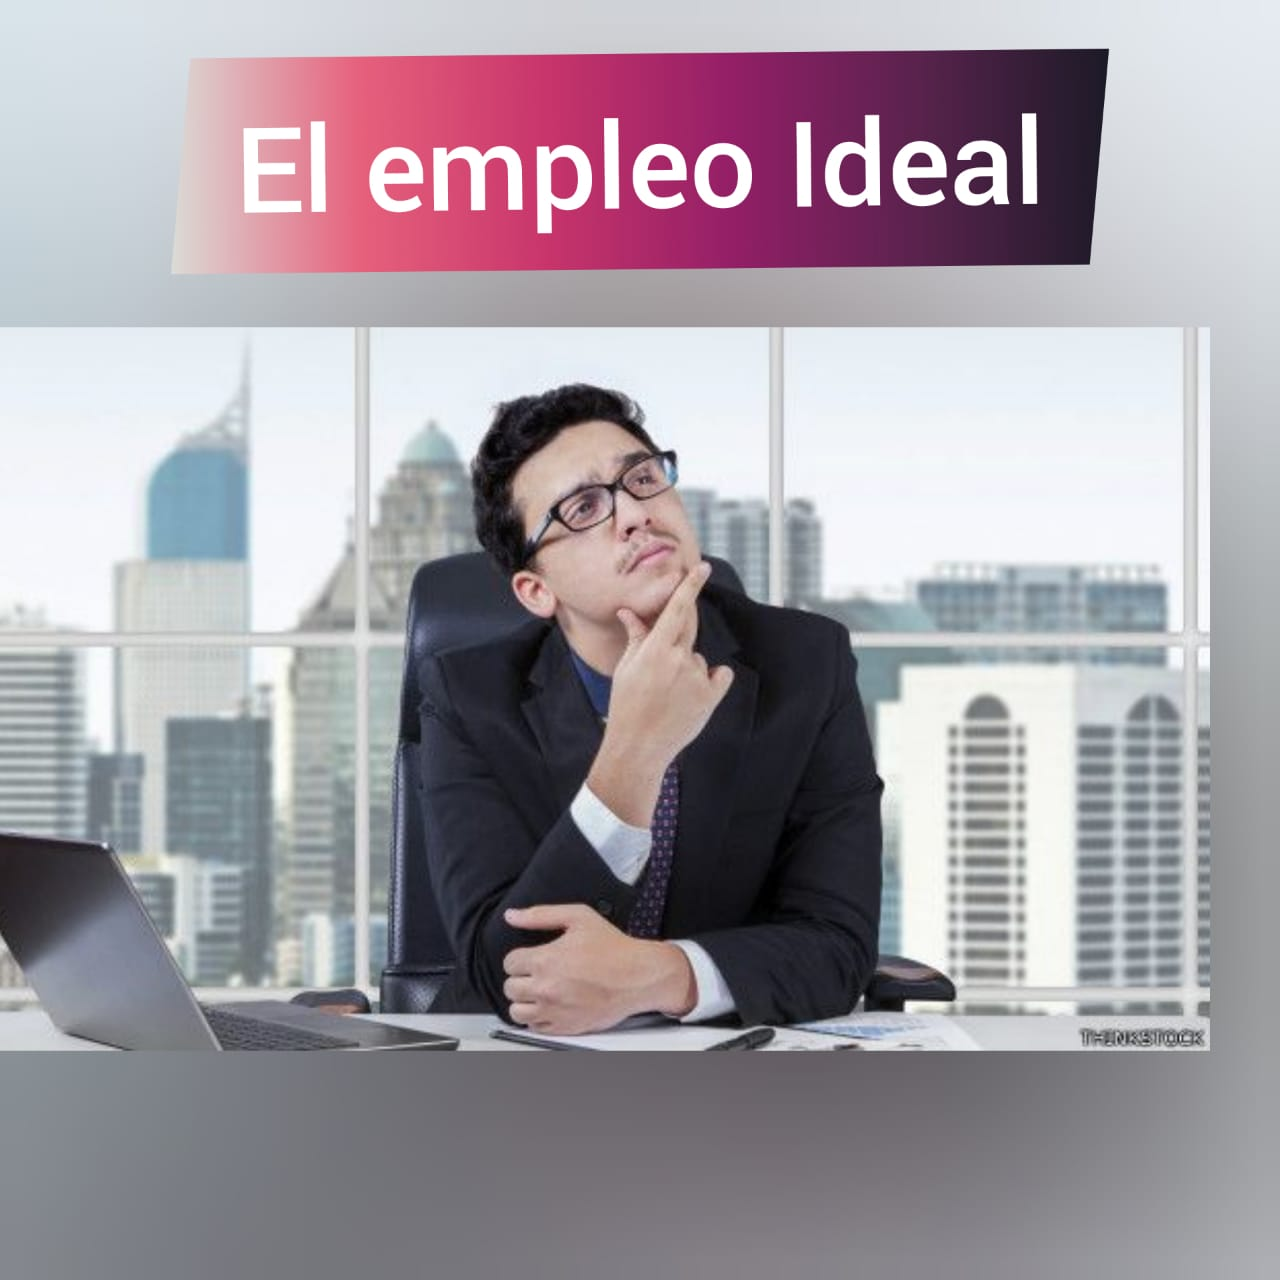 empleo ideal para ti en santo domingo republica dominicana